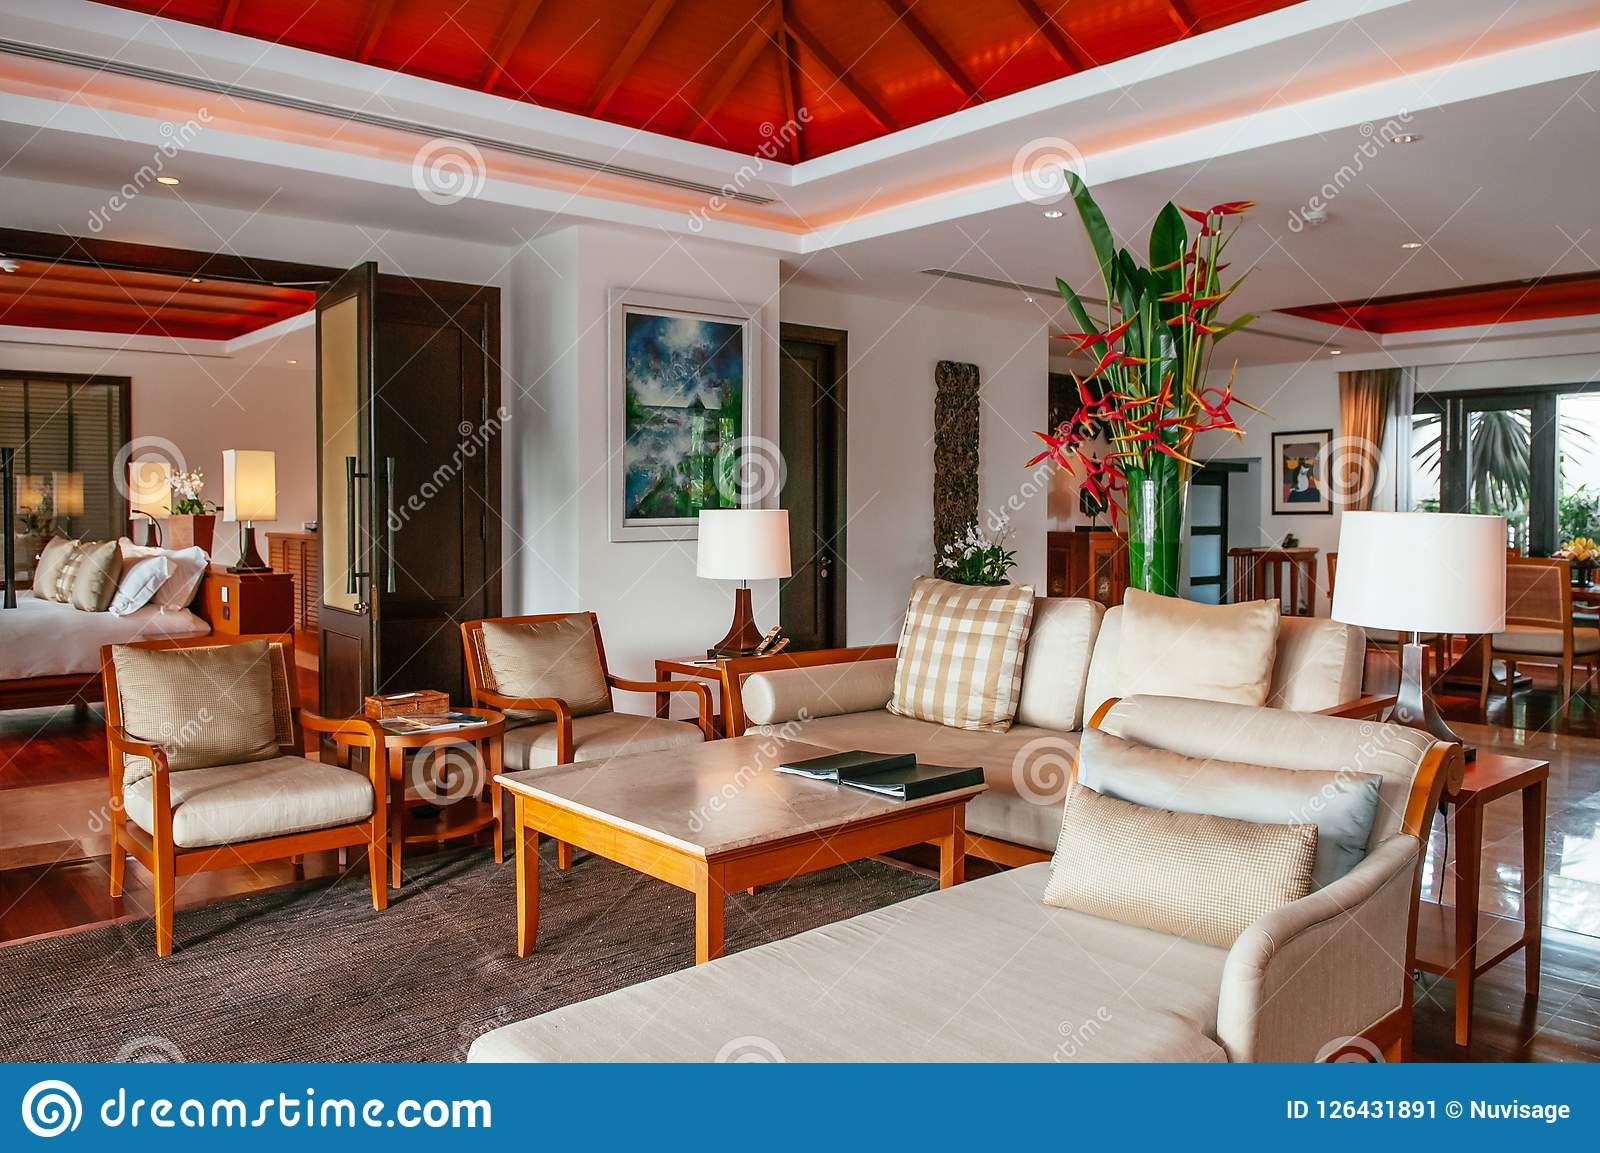 Tropical Resort Villa Living Room With Wooden Furniture